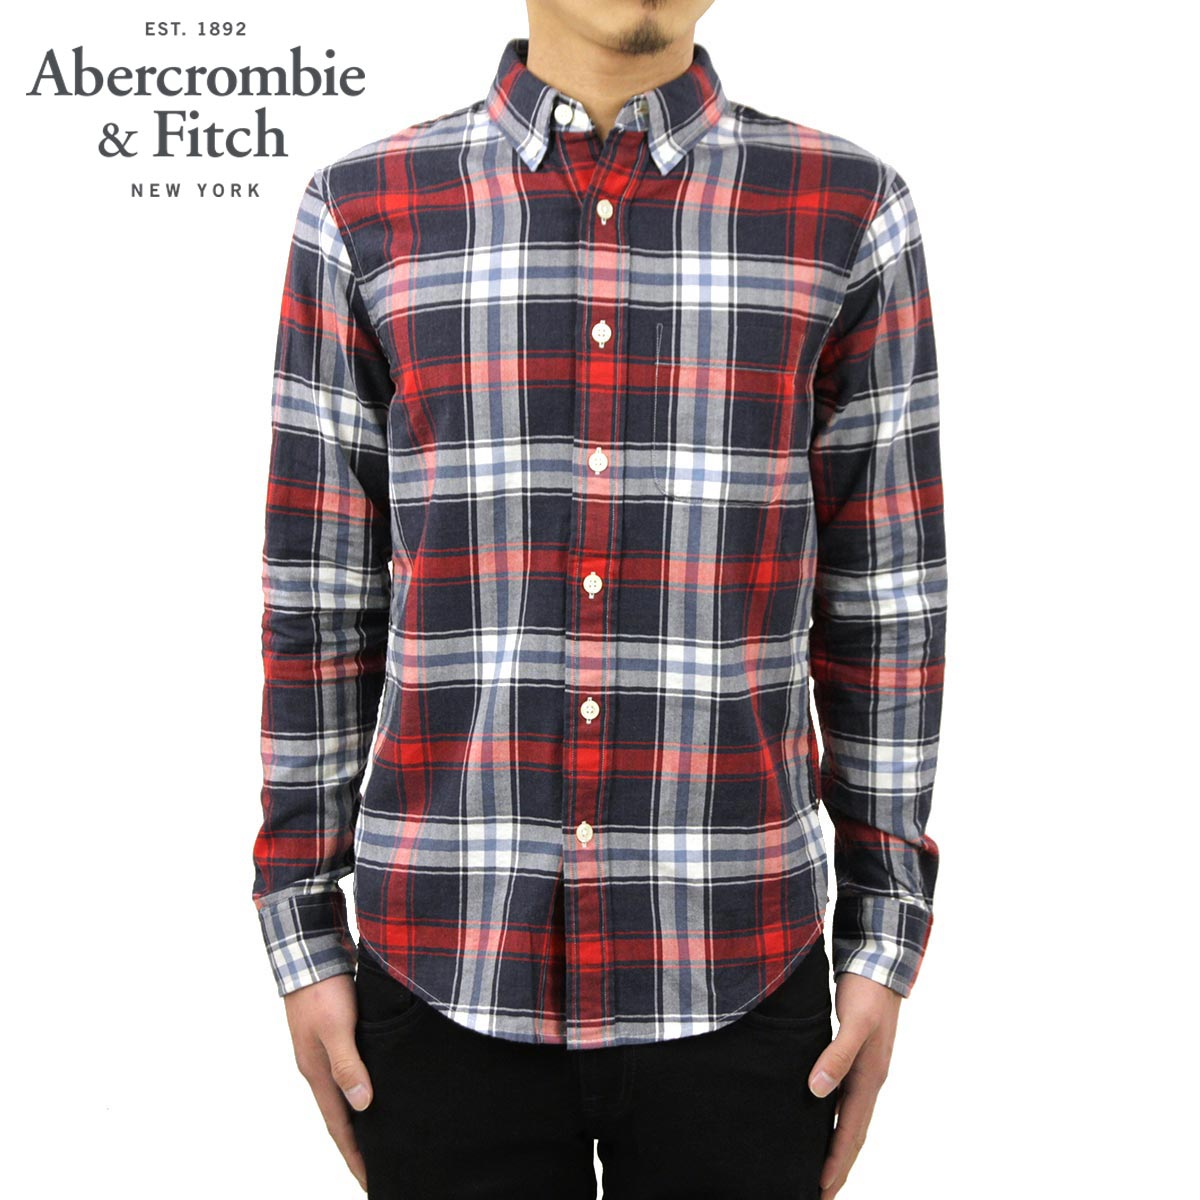 アバクロ Abercrombie&Fitch 正規品 メンズ 長袖シャツ Plaid Herringbone Button-Up Shirt 125-168-2371-208 D00S20